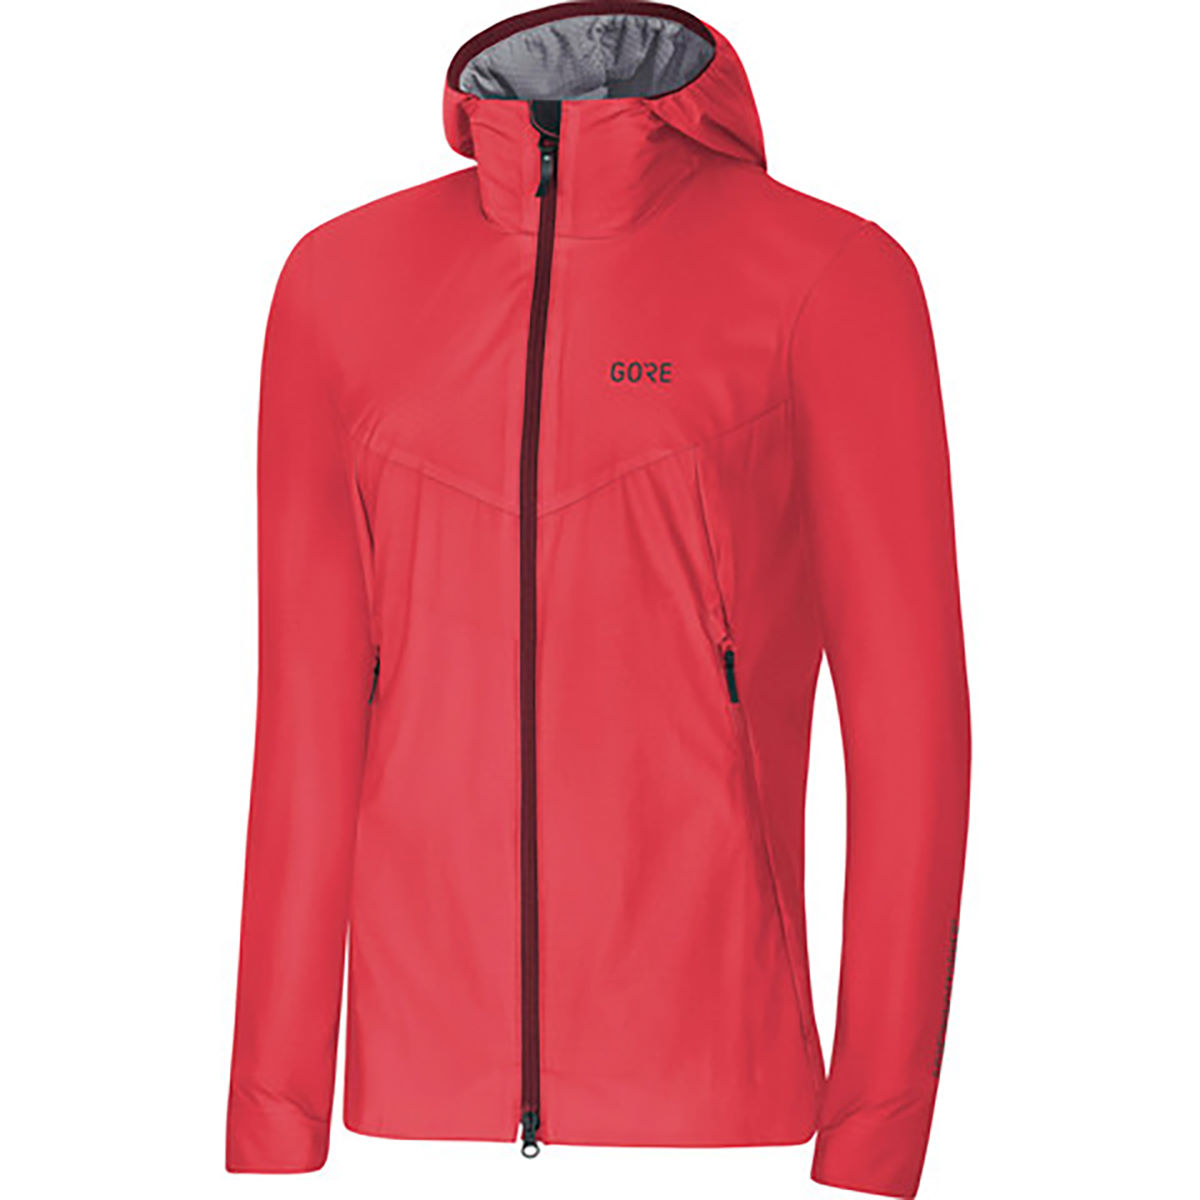 Gore H5 Women's GWS Insulated Hd Jacket - Chaquetas